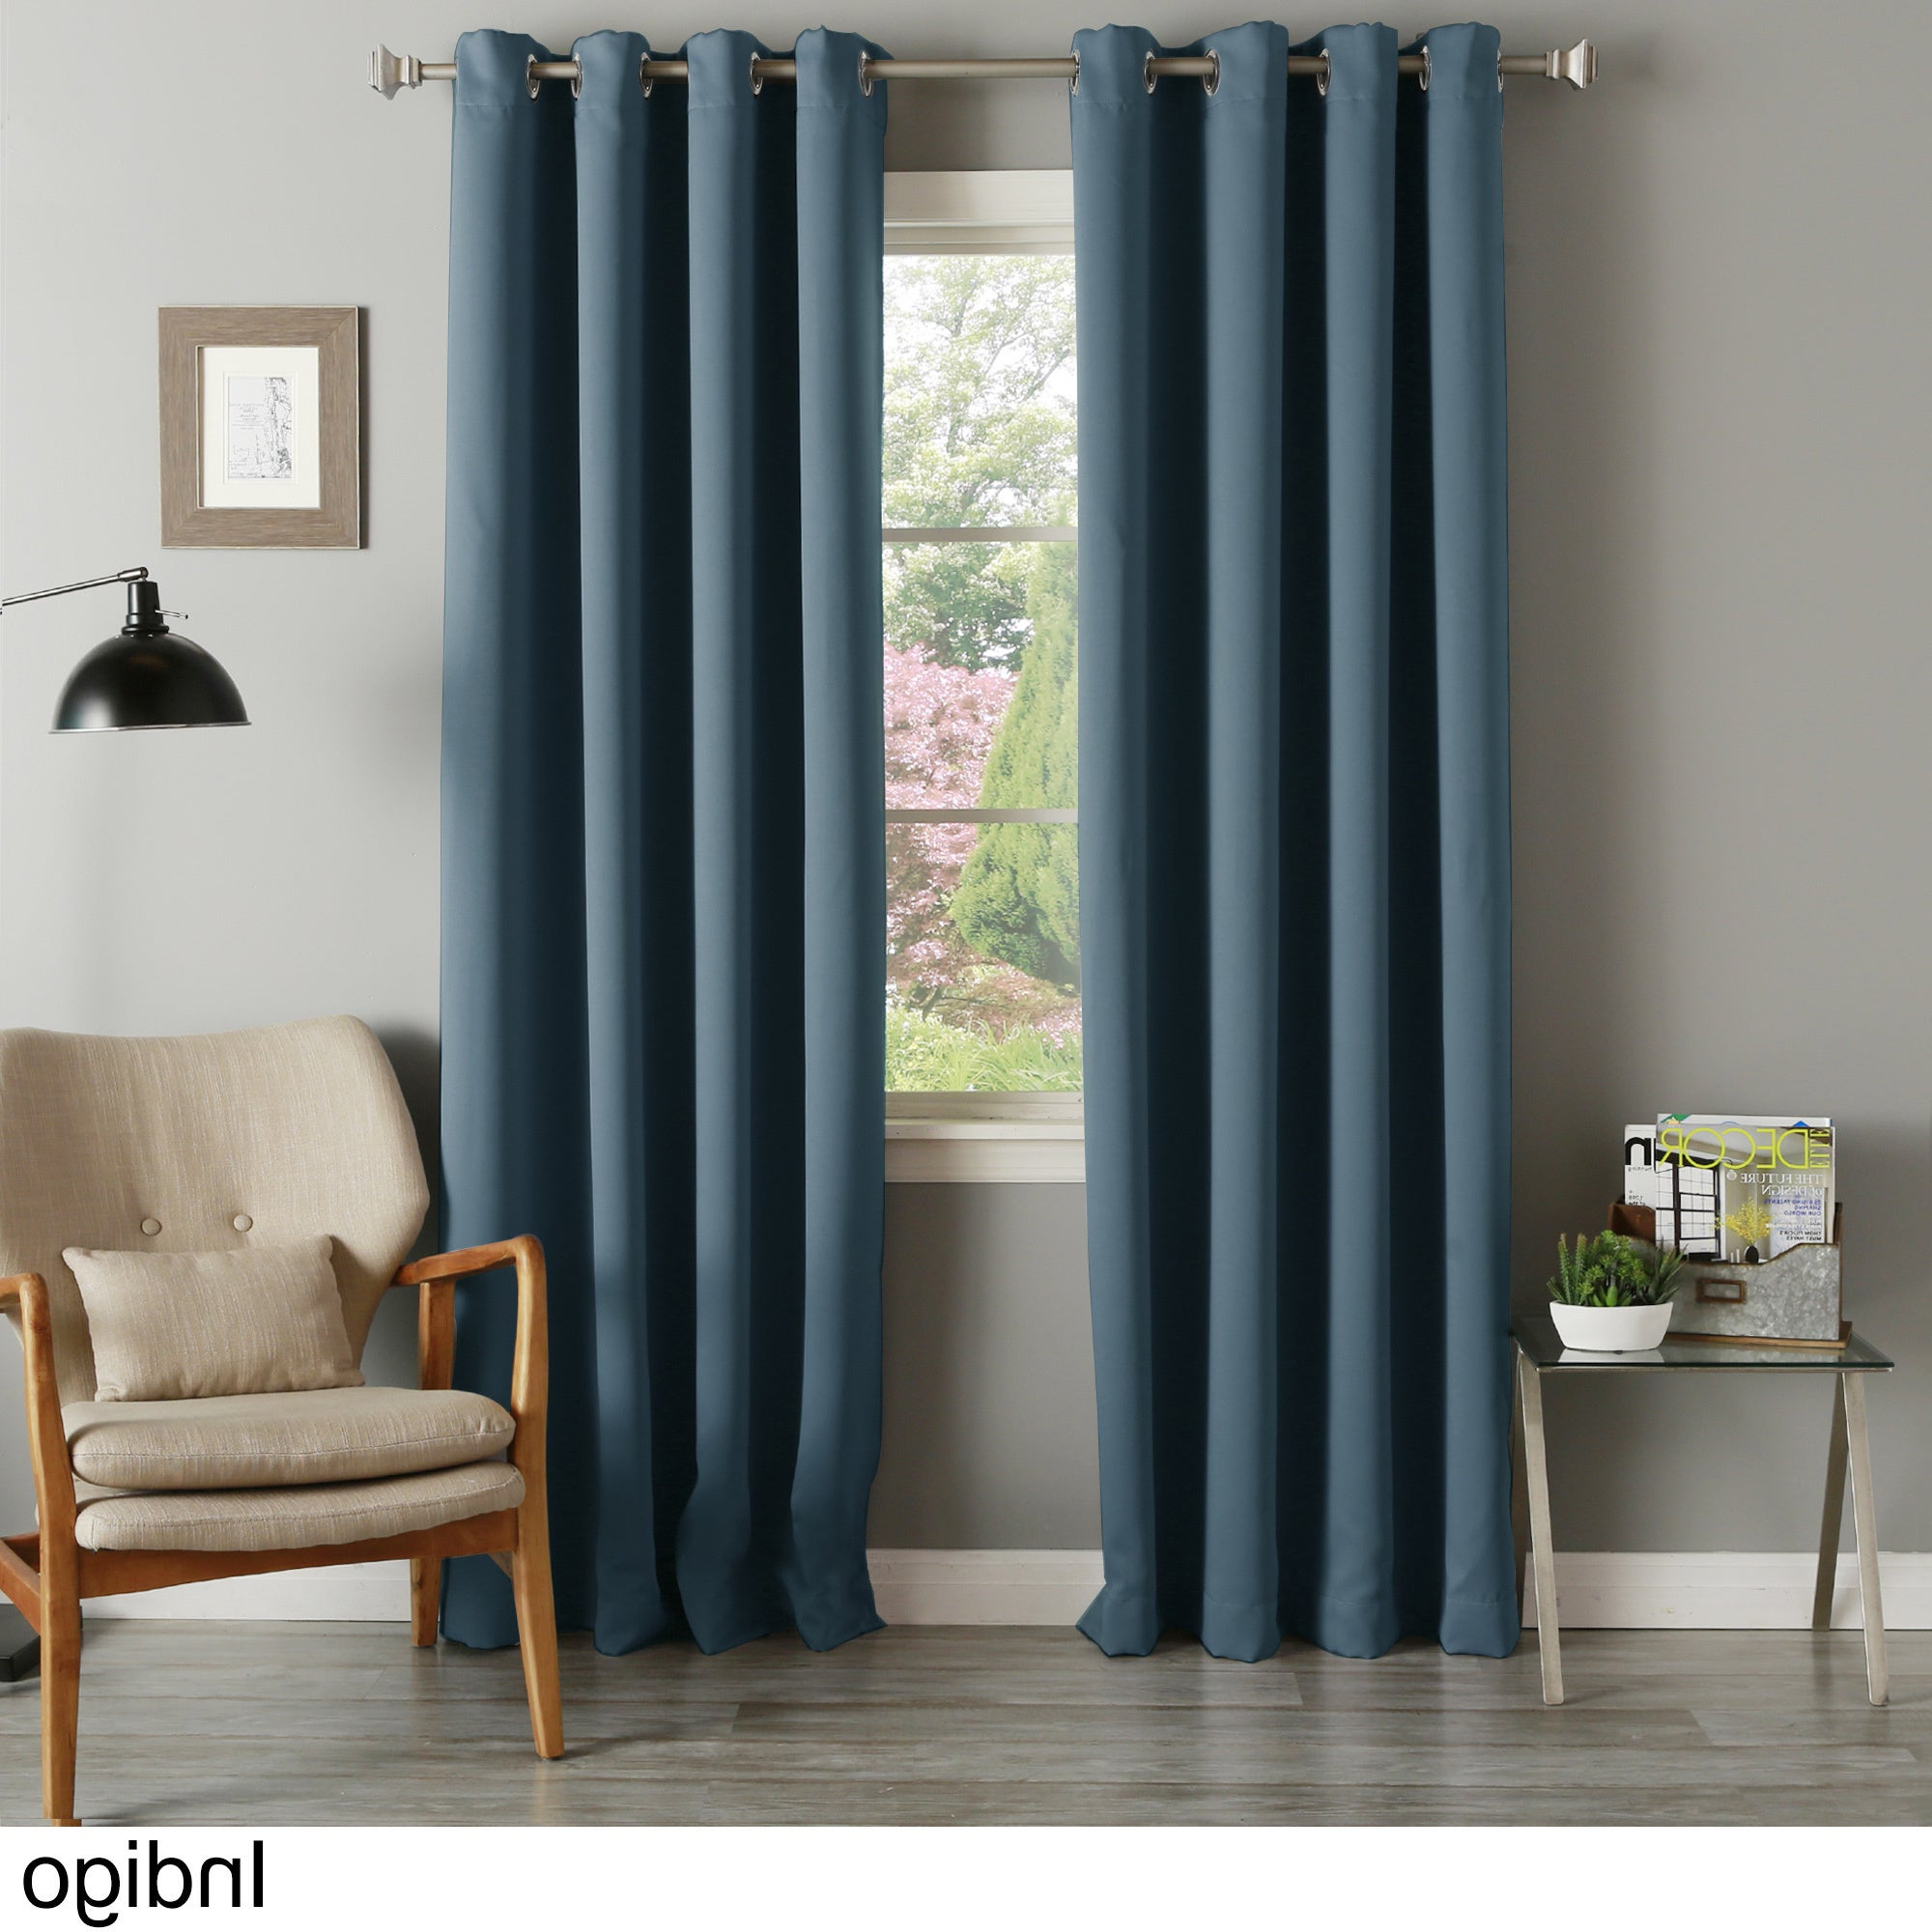 Thermal Insulated Blackout Curtain Panel Pairs Inside Fashionable Aurora Home Silvertone Grommet Thermal Insulated Blackout Curtain Panel Pair (View 14 of 20)